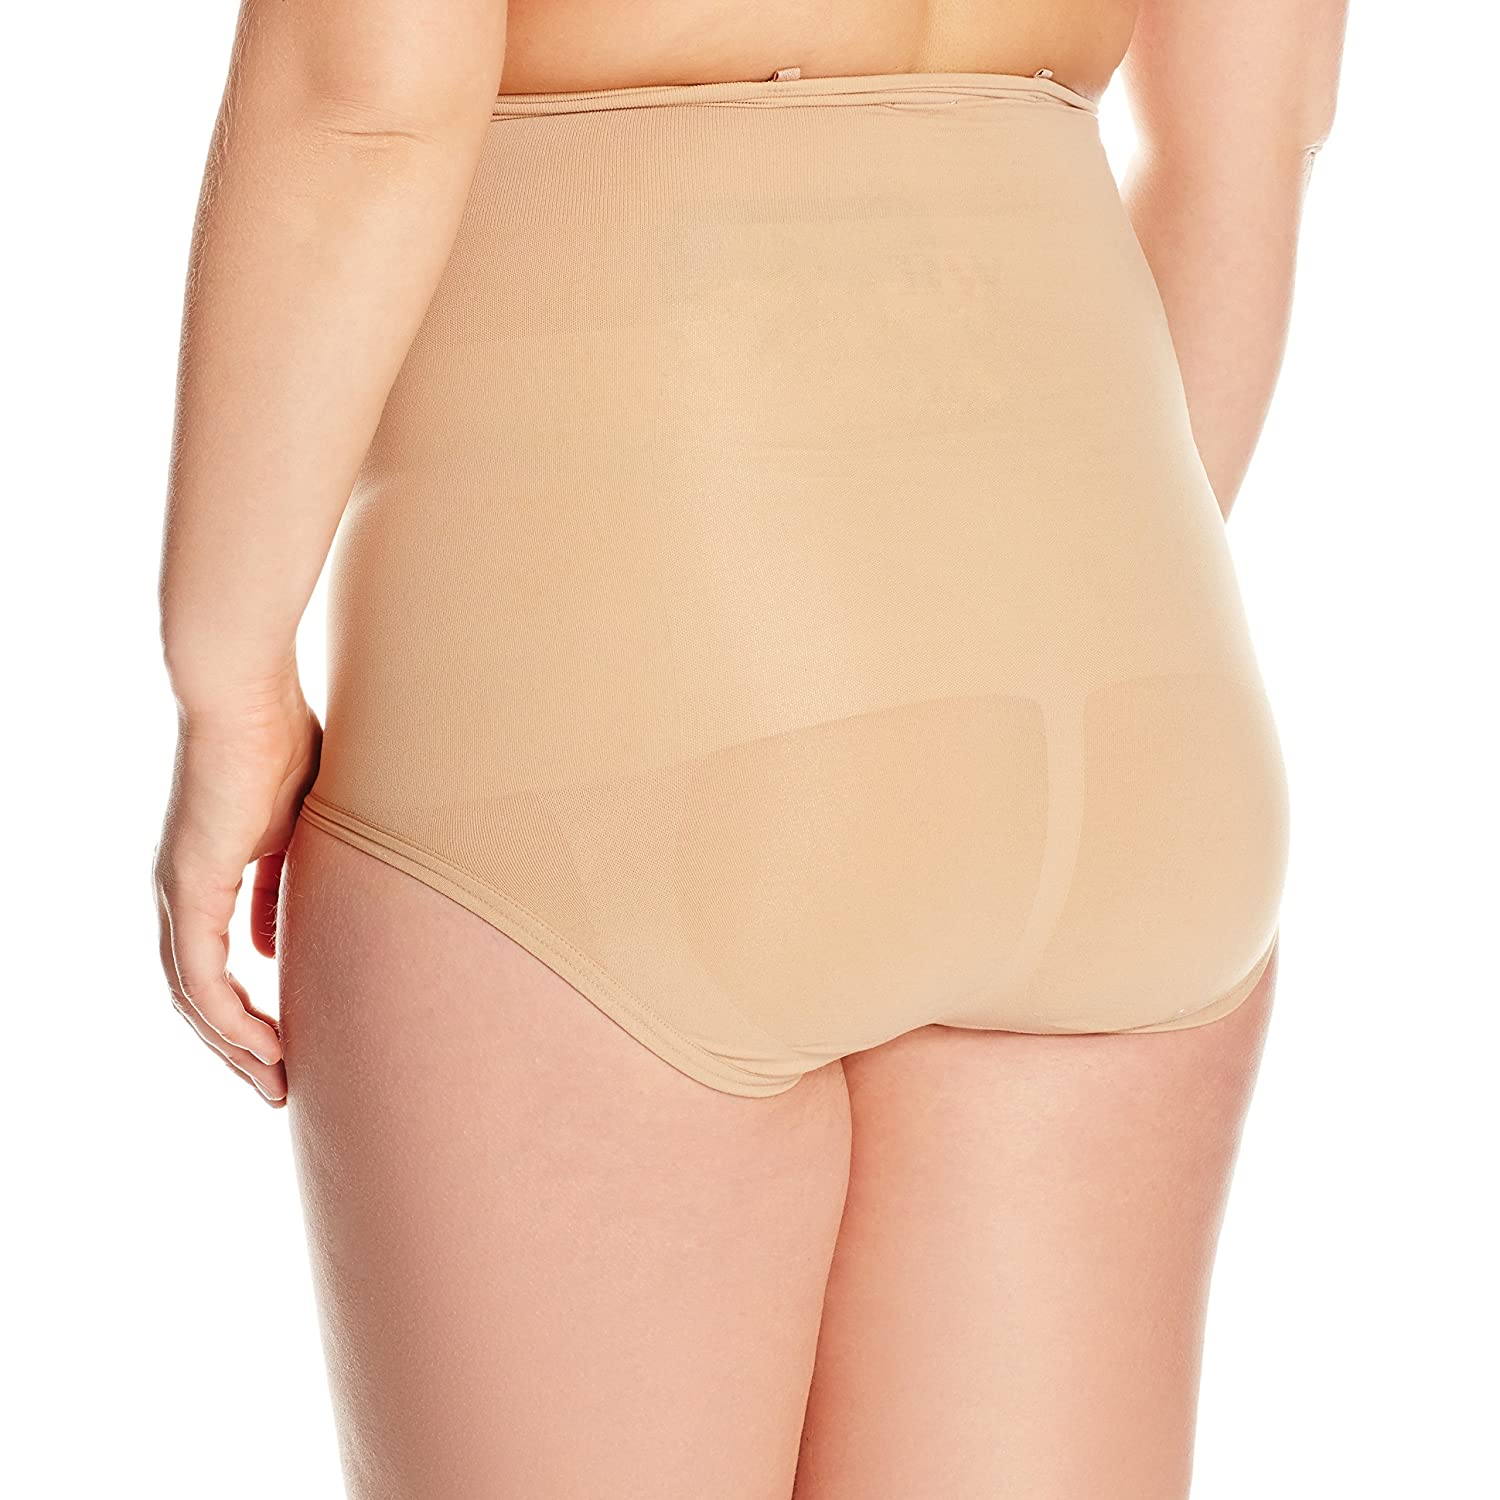 Body Wrap Womens Plus Size Full Figure The Superior Derriere High-Waist Panty